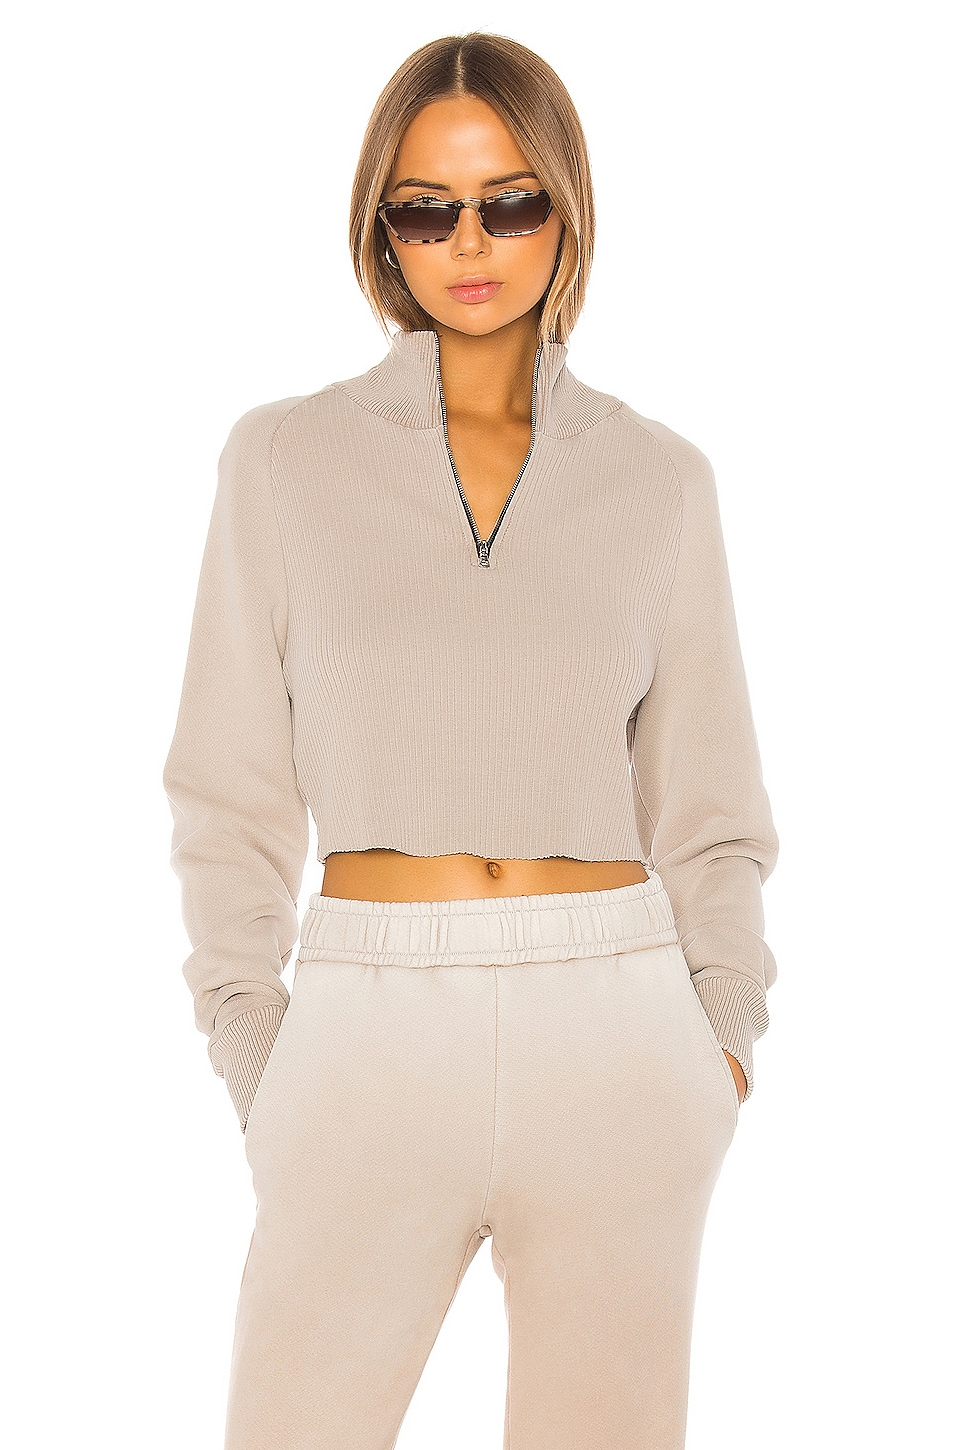 COTTON CITIZEN Beijing Crop Sweater in Sand Dollar